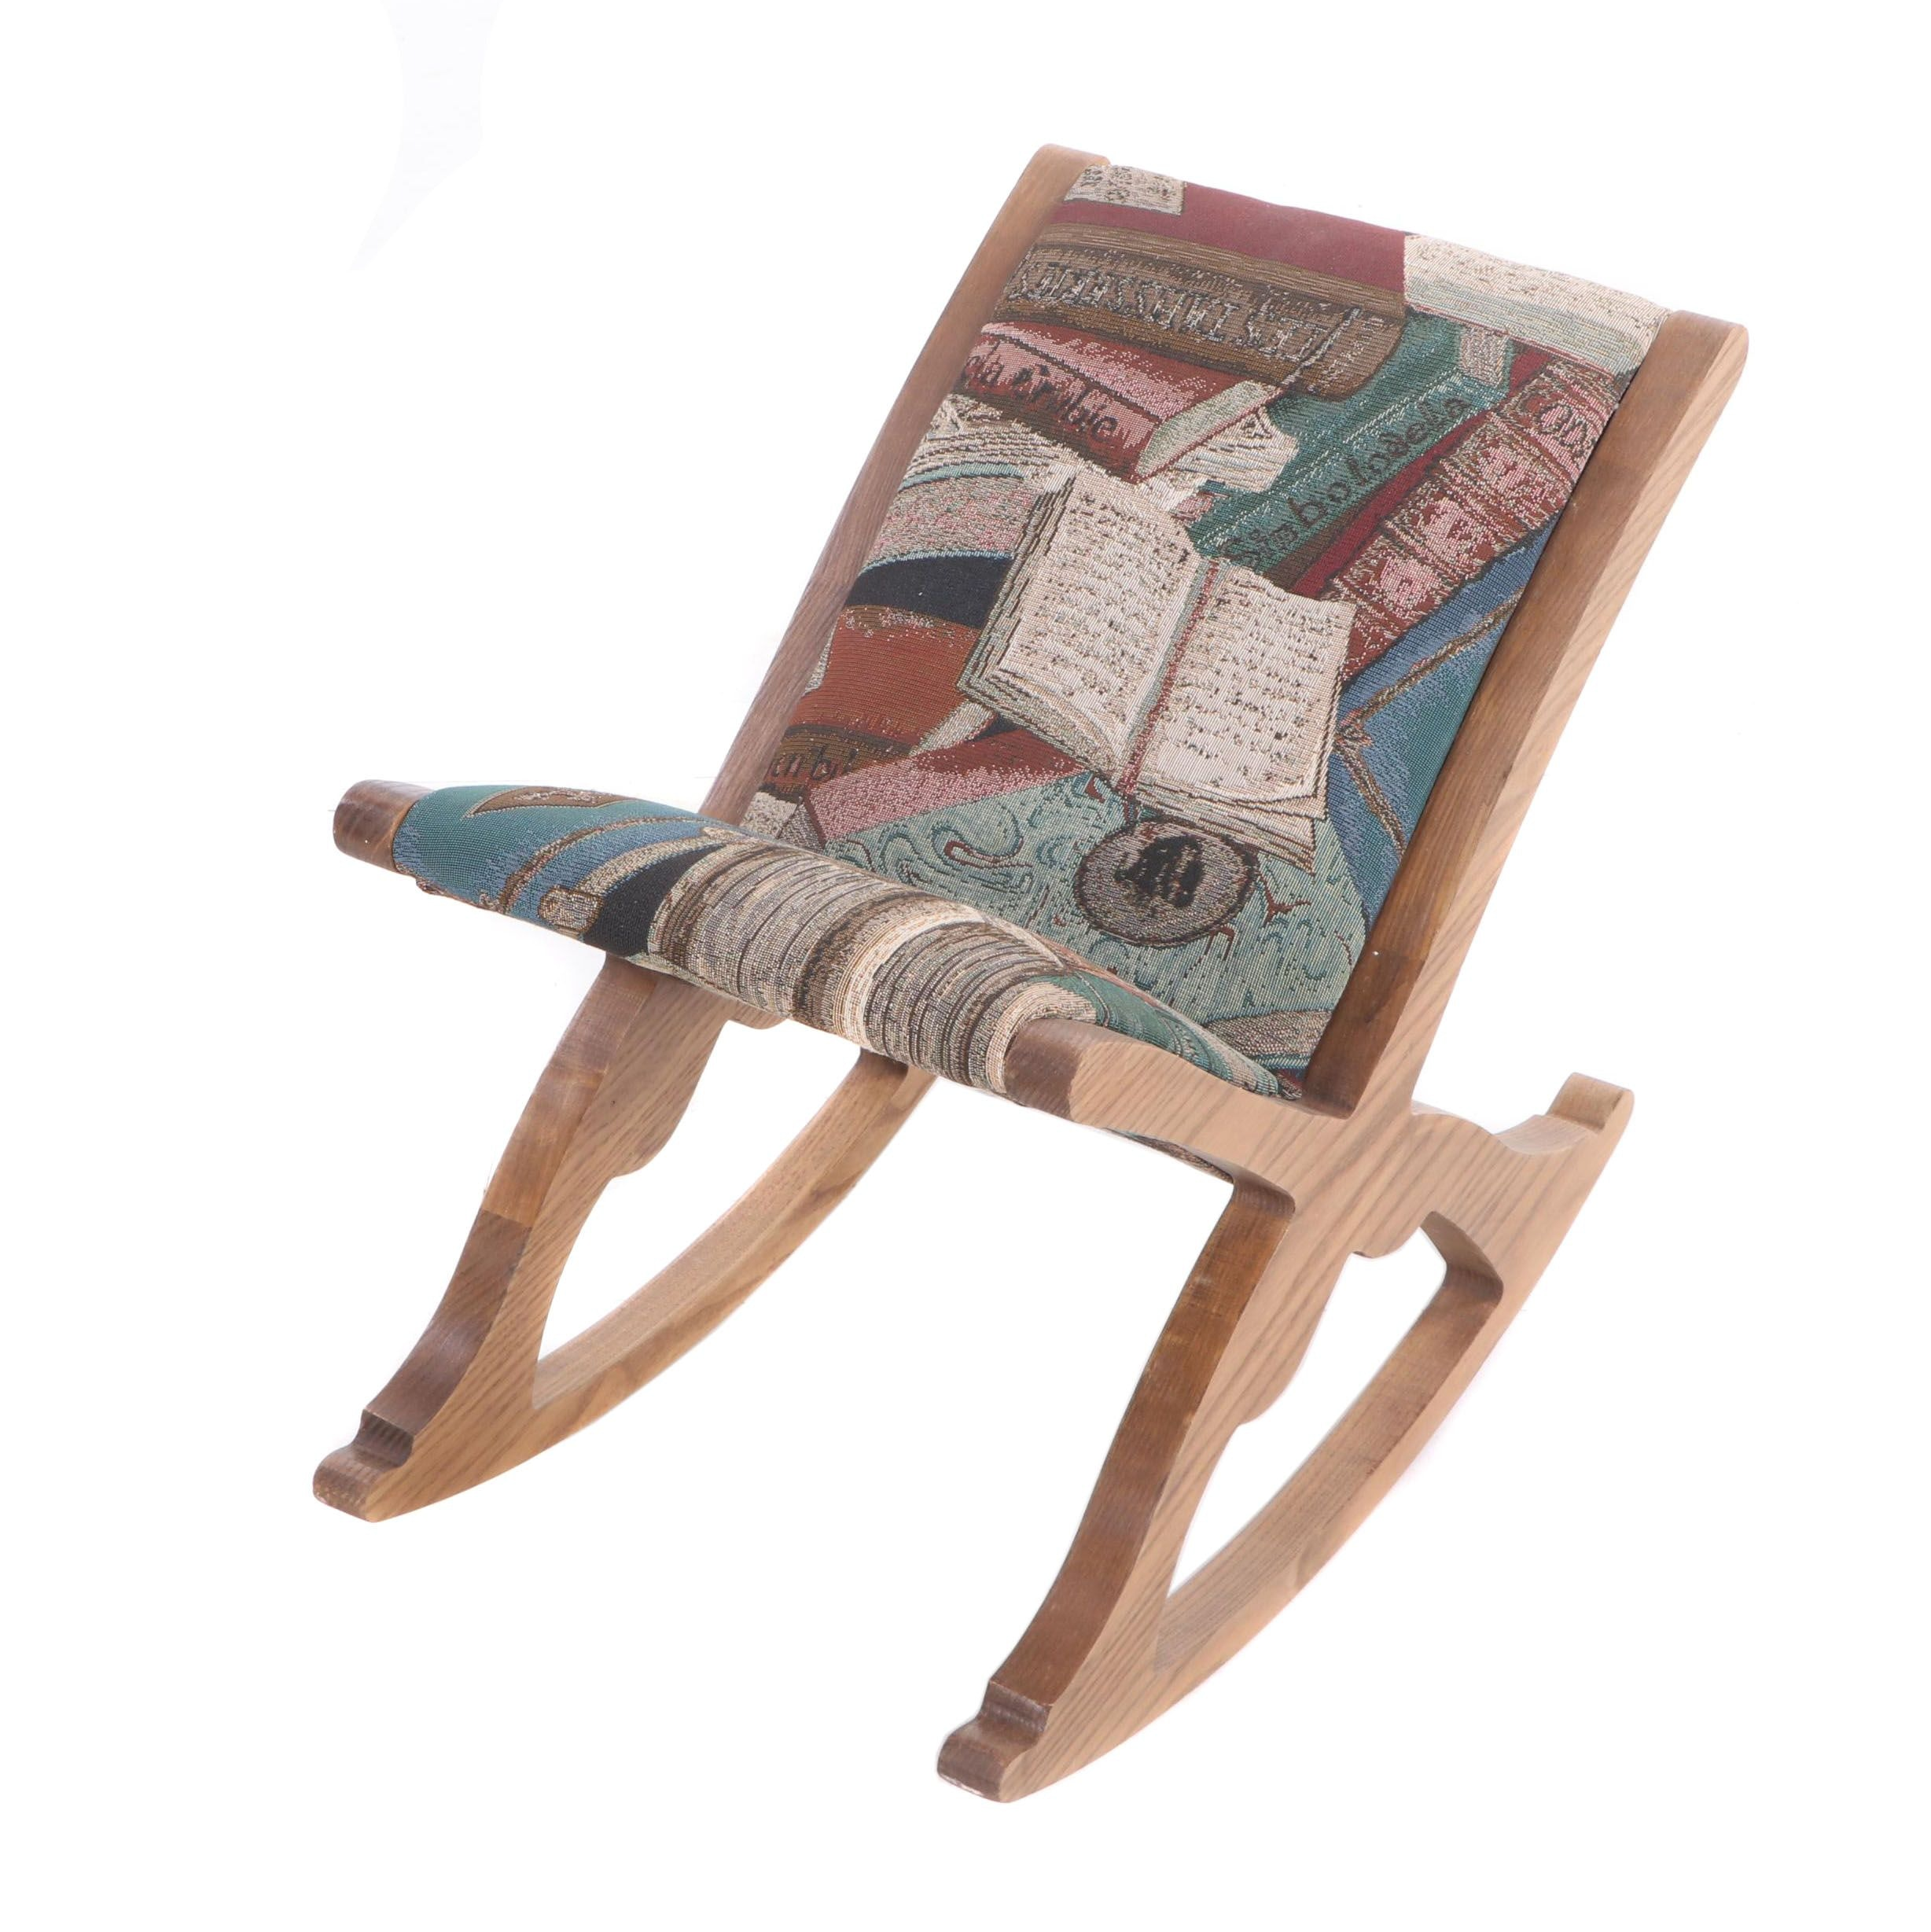 Levenger Well-Read Life Oak Child's Rocking Chair, Contemporary